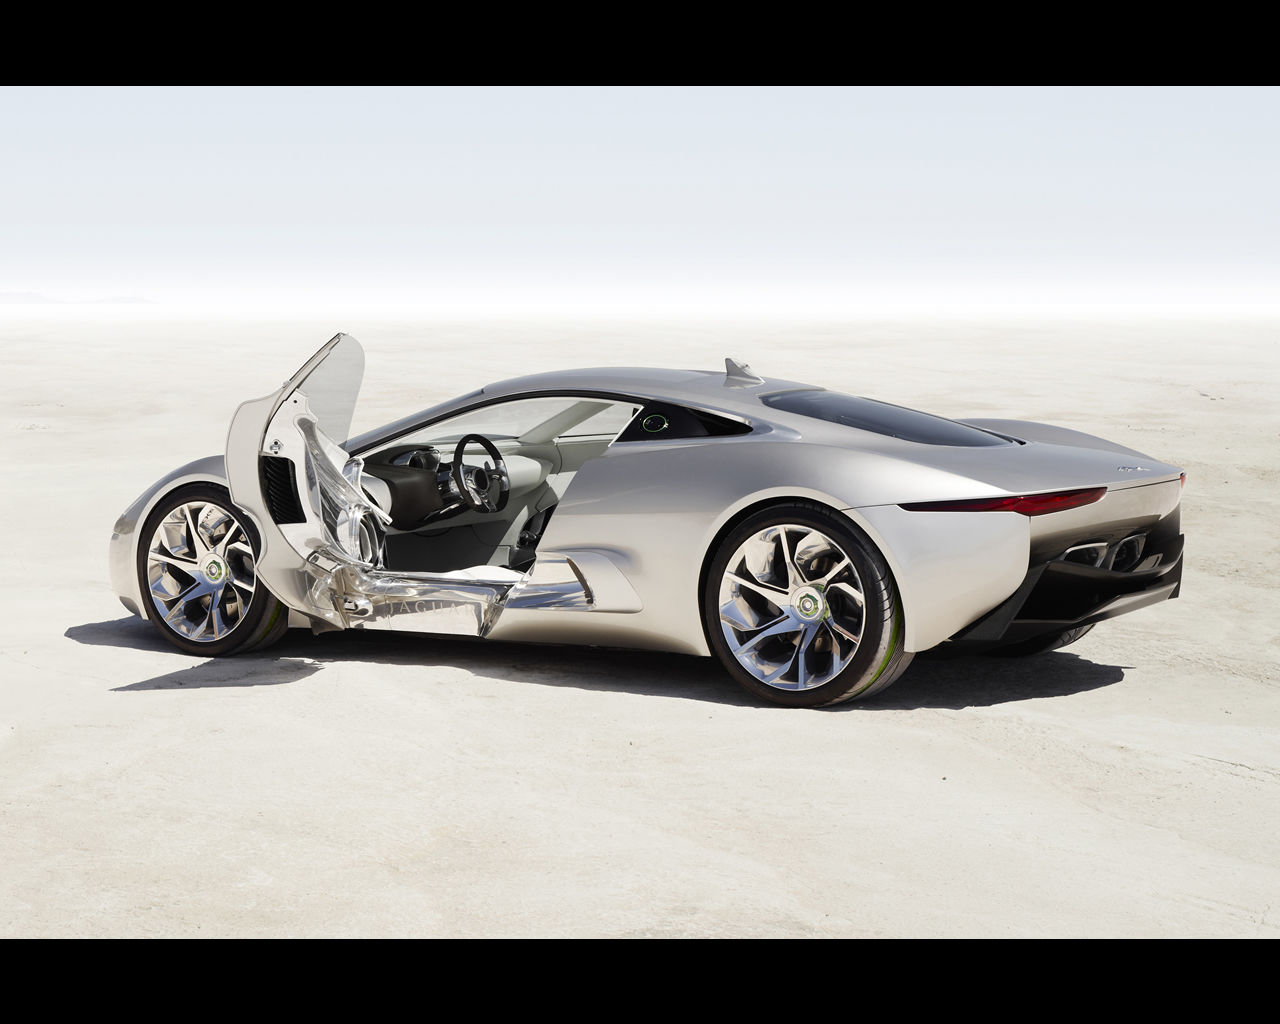 Merveilleux Jaguar C X75 Concept 2010 Plug In Electric Car With Gas  Turbines Propelled Range Extender